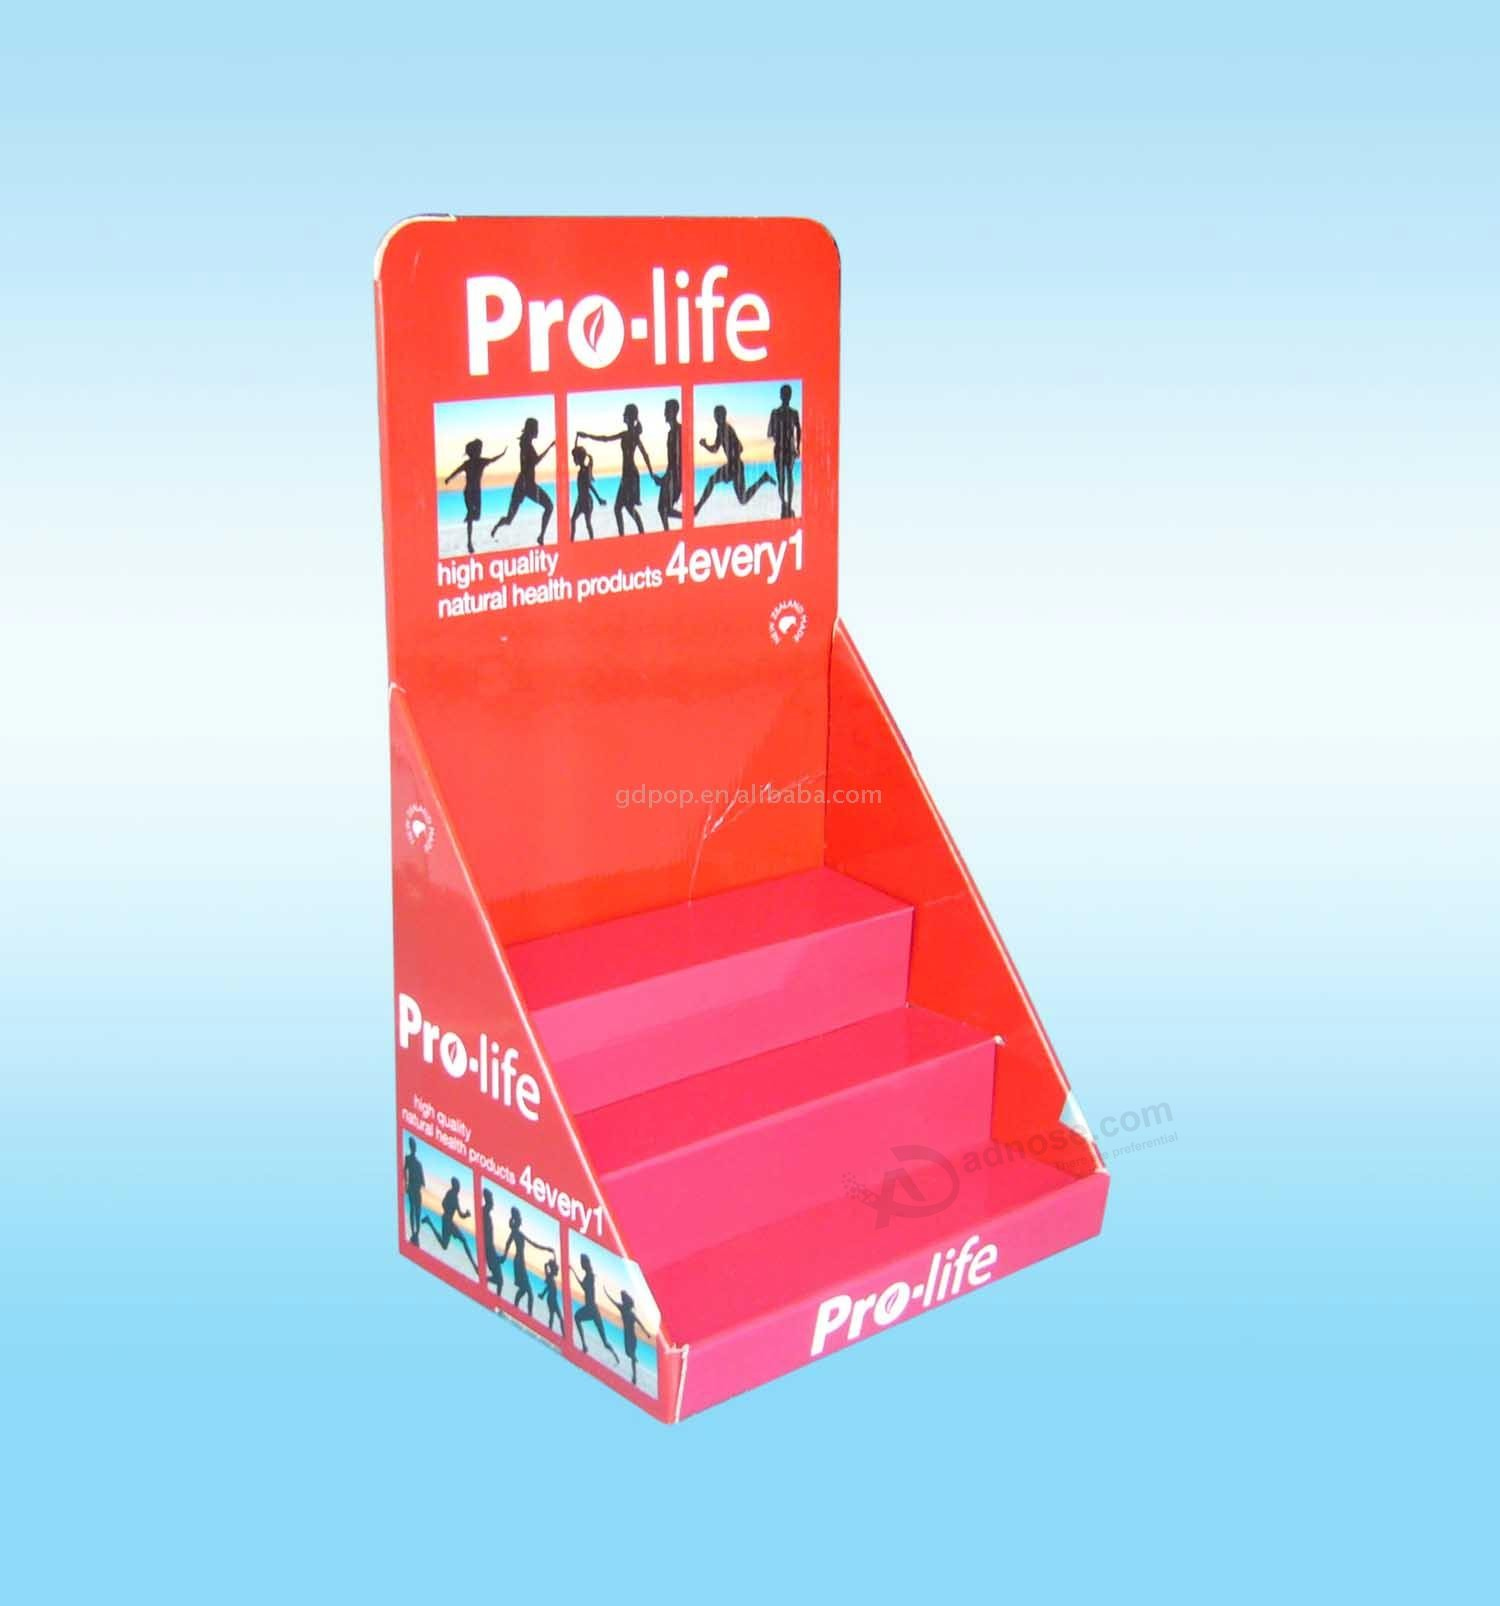 Printed Cardboard Promotional Flooring Counter Display Box